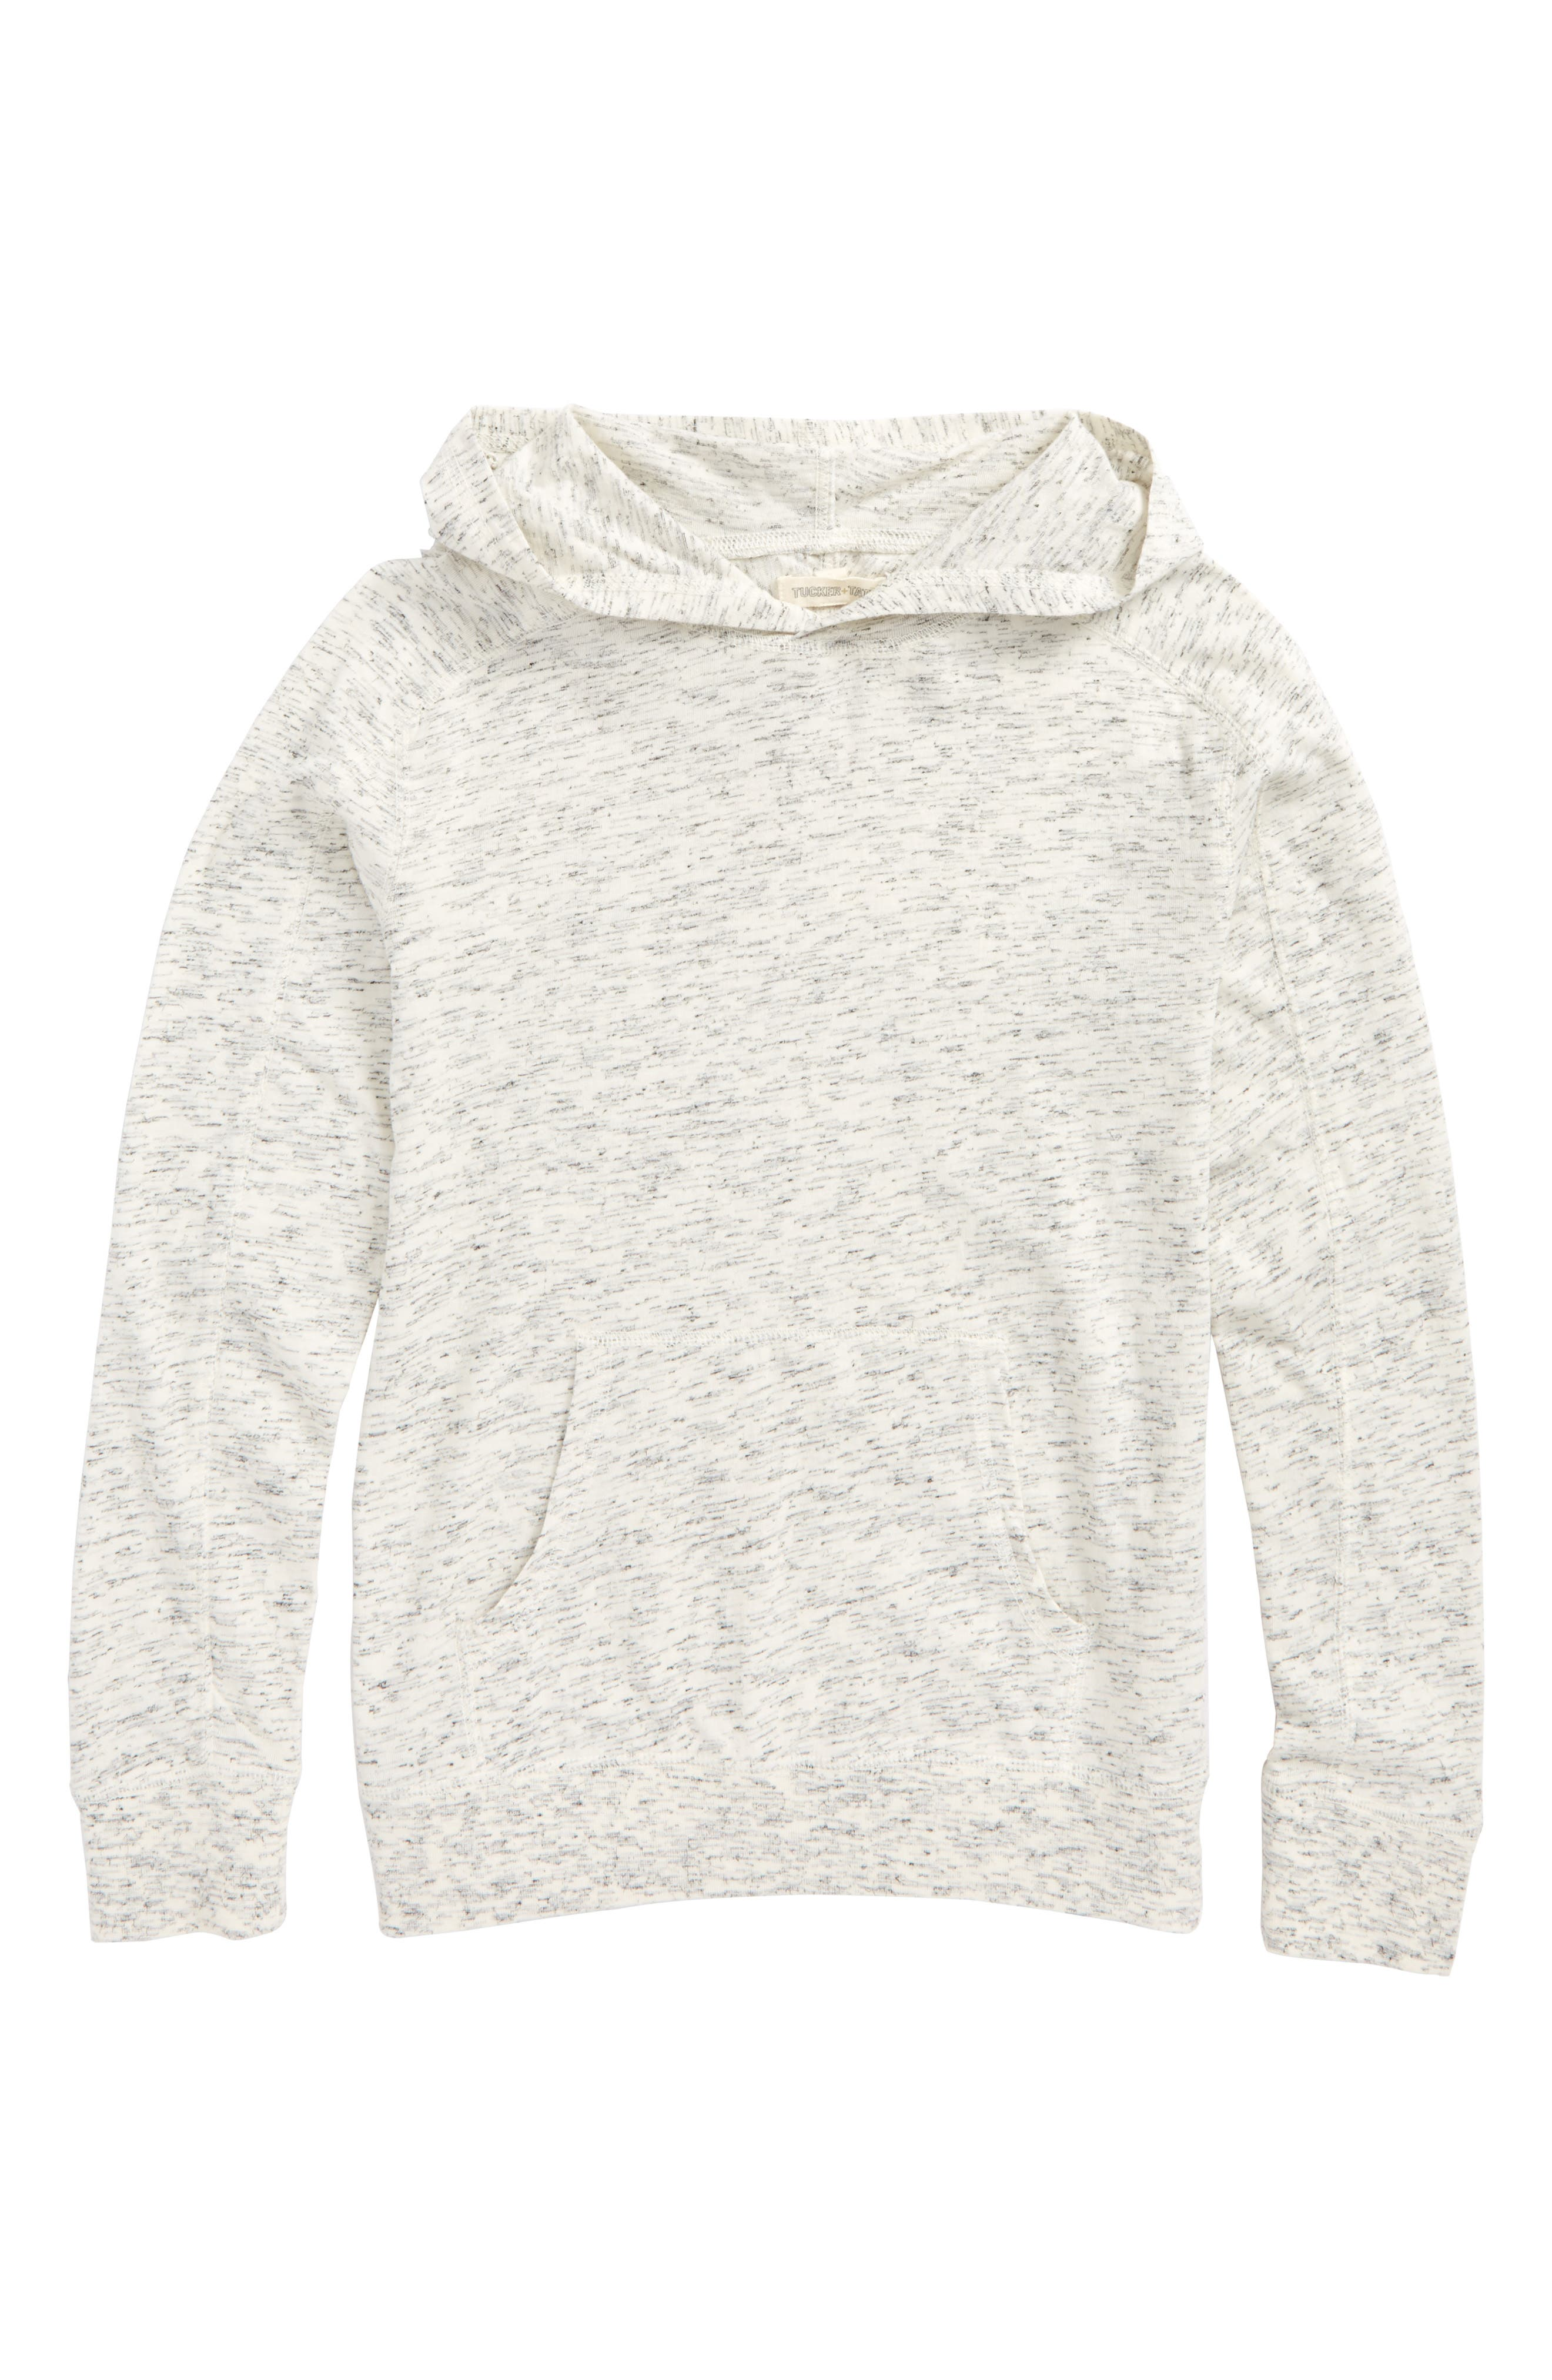 Filament Hoodie,                         Main,                         color, 235